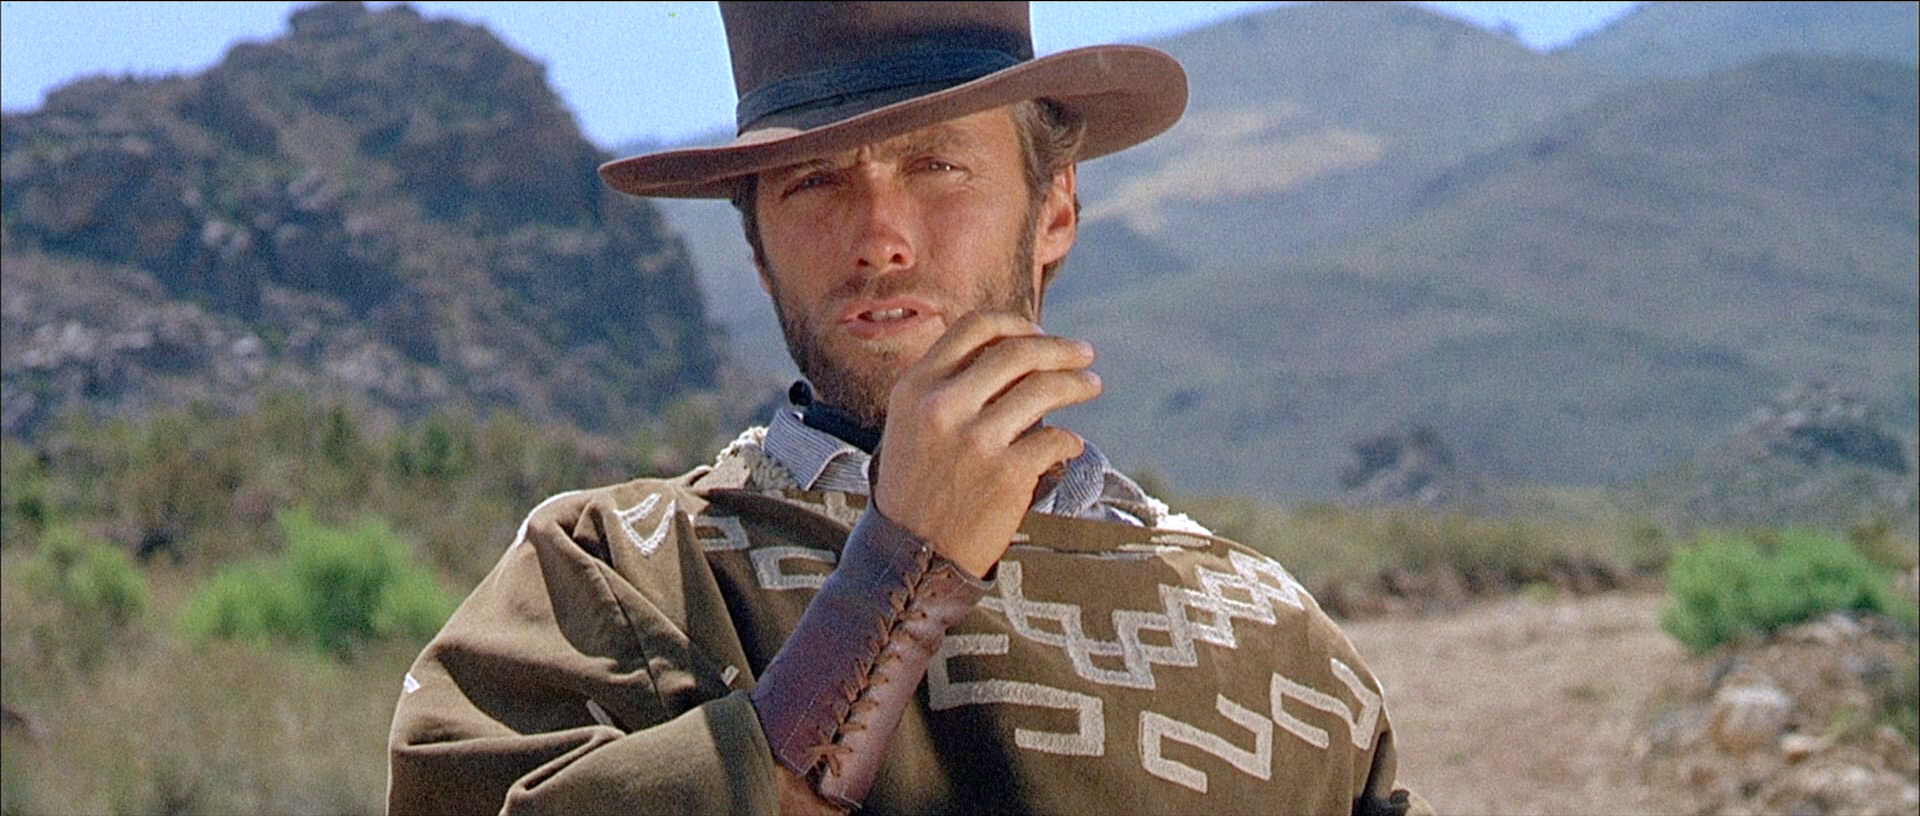 Clint_Eastwood1.png